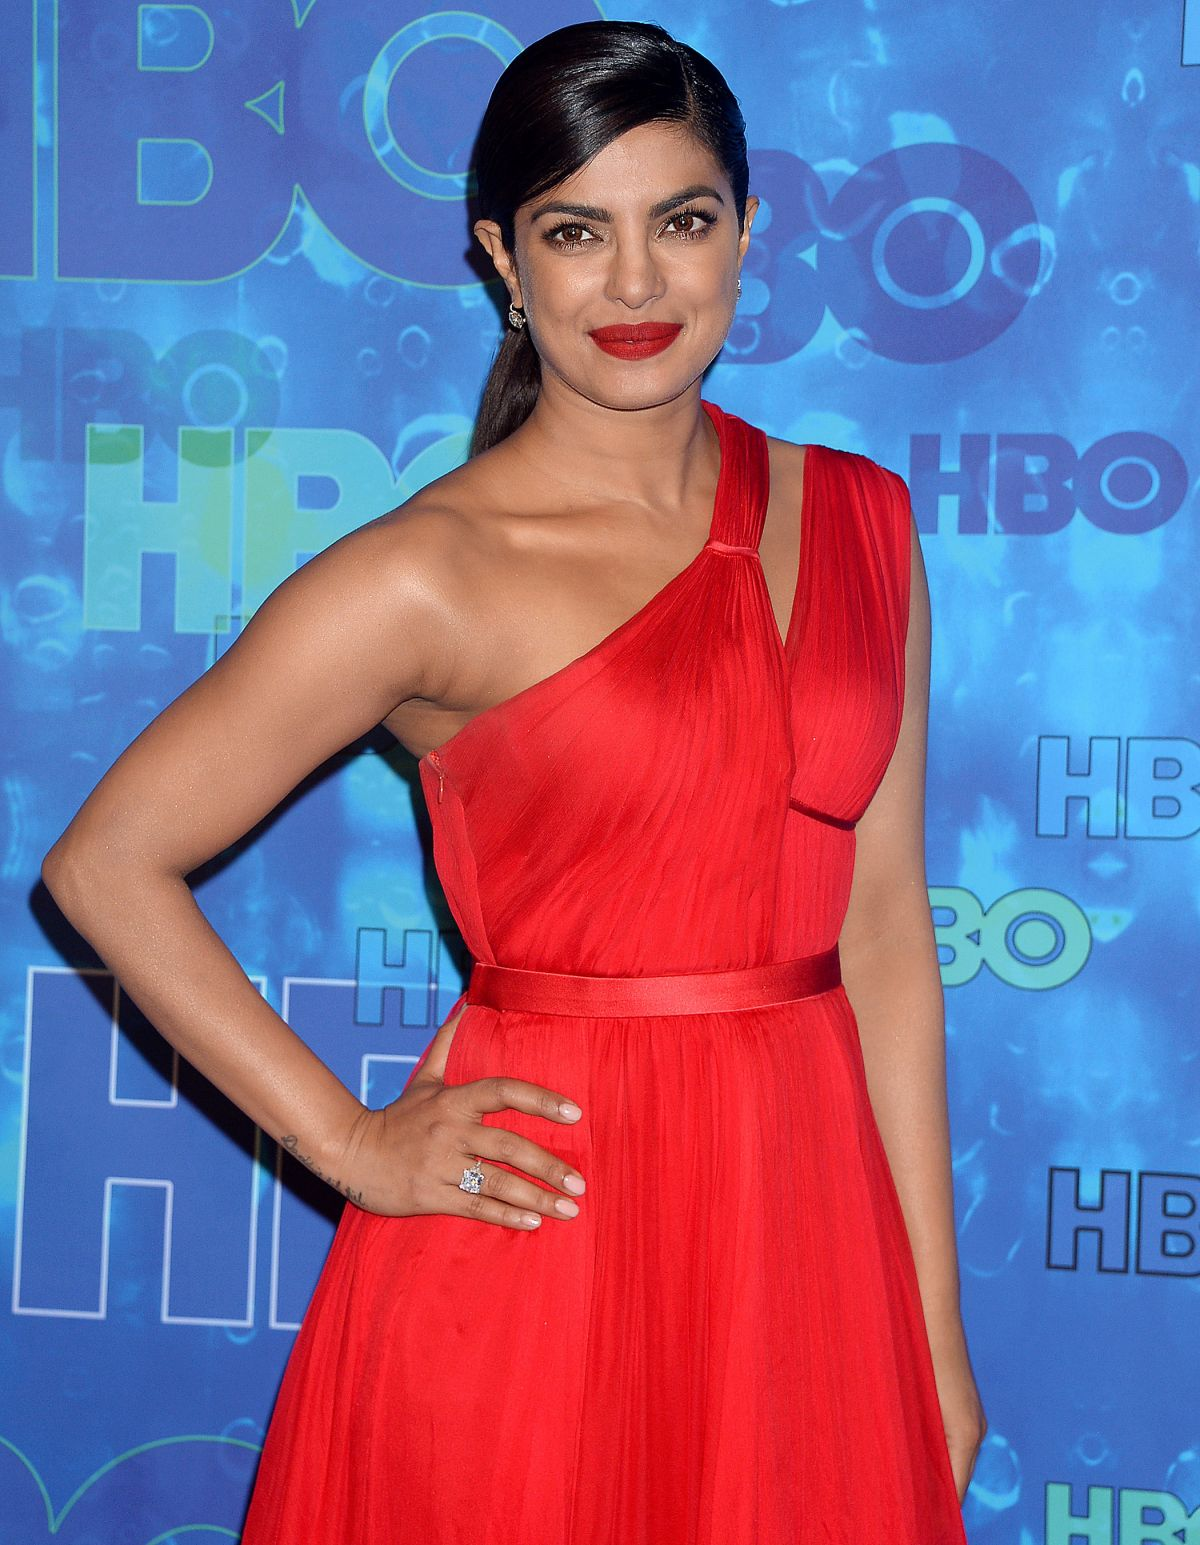 PRIYANKA CHOPRA at HBO's 2016 Emmy's After Party in Los Angeles 09/18/2016